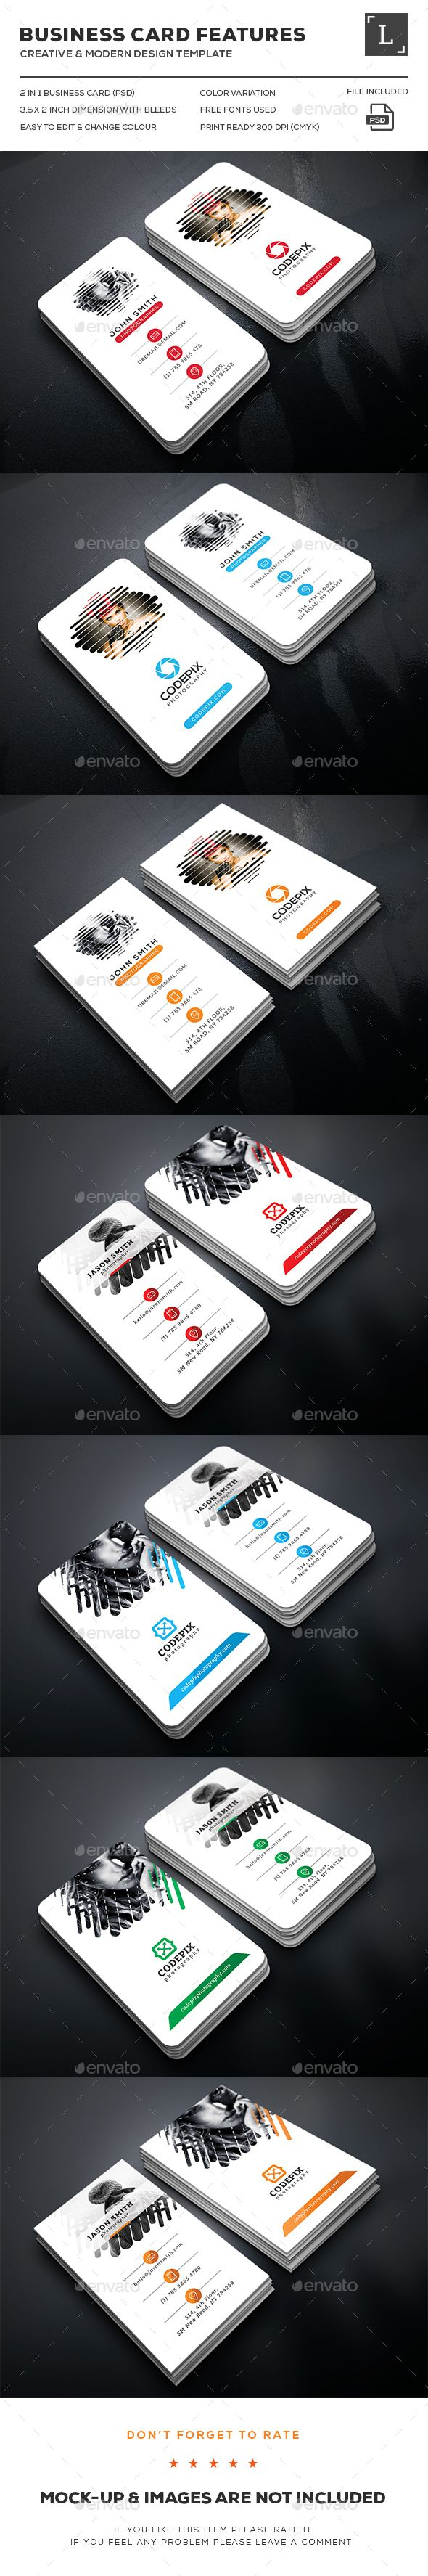 41 best business cards design images on pinterest